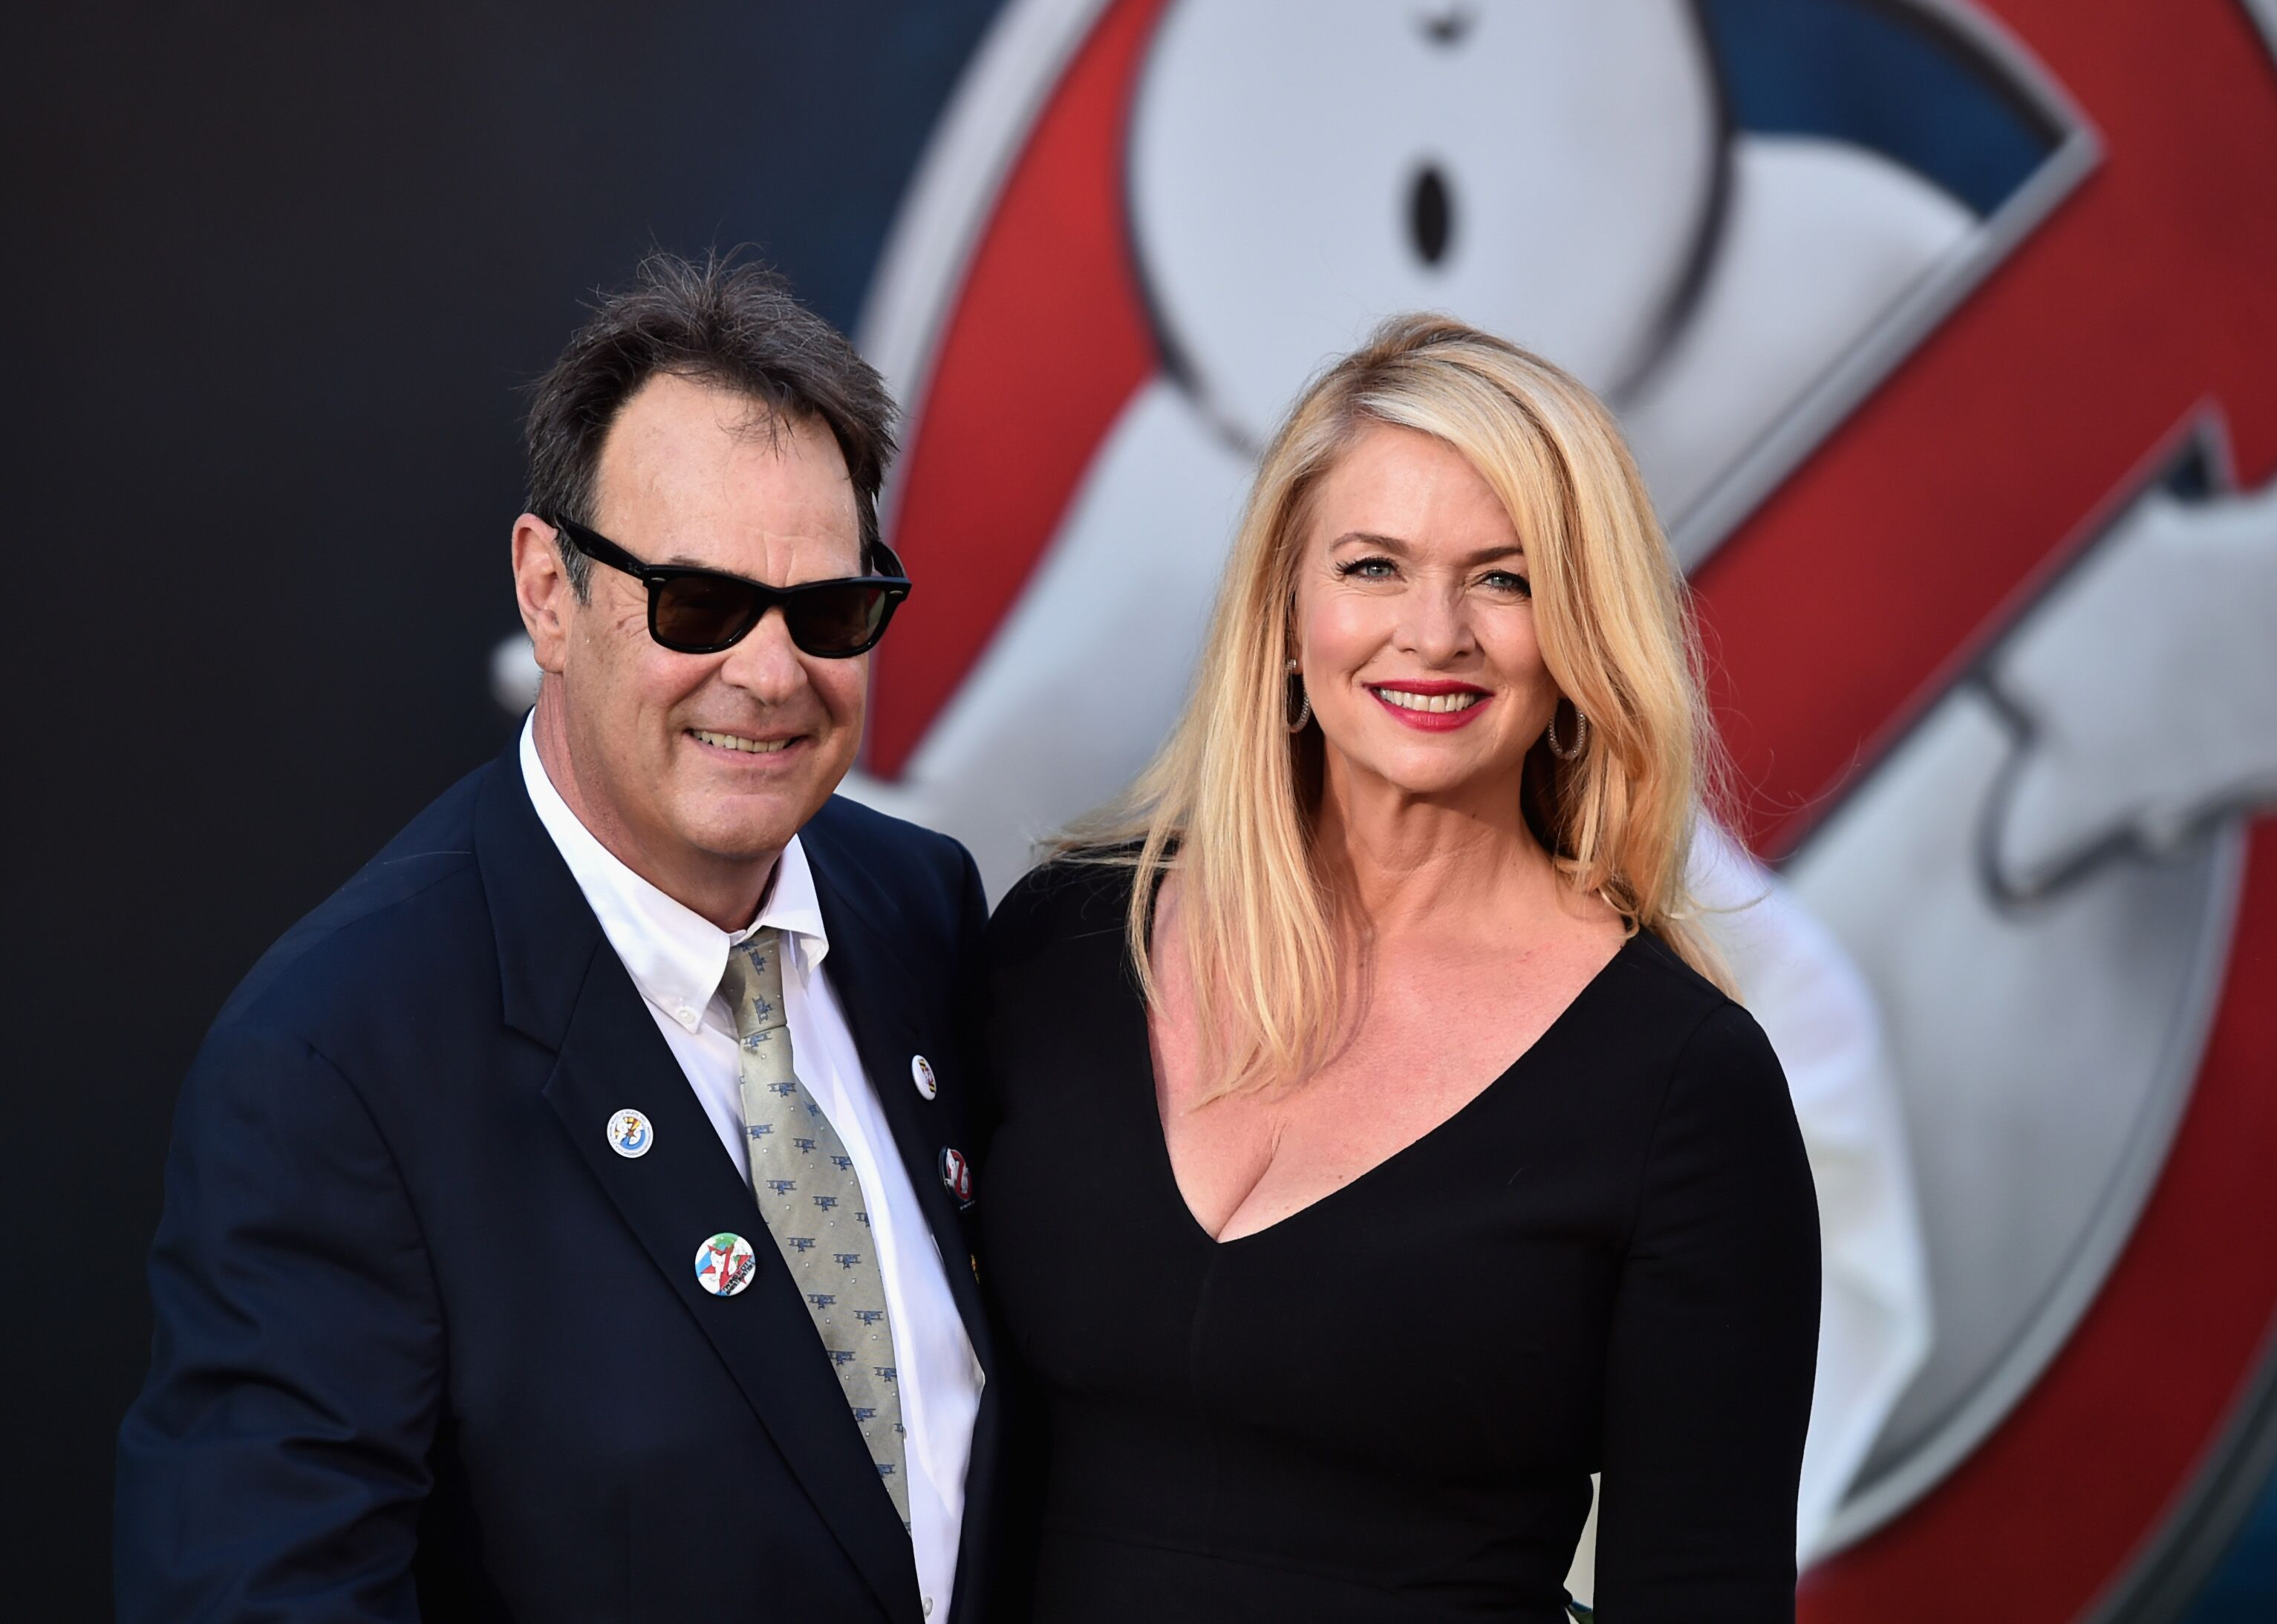 Dan Aykroyd and Donna Dixon arrive at the Premiere of Sony Pictures' 'Ghostbusters' at TCL Chinese Theatre. | Source: Getty Images